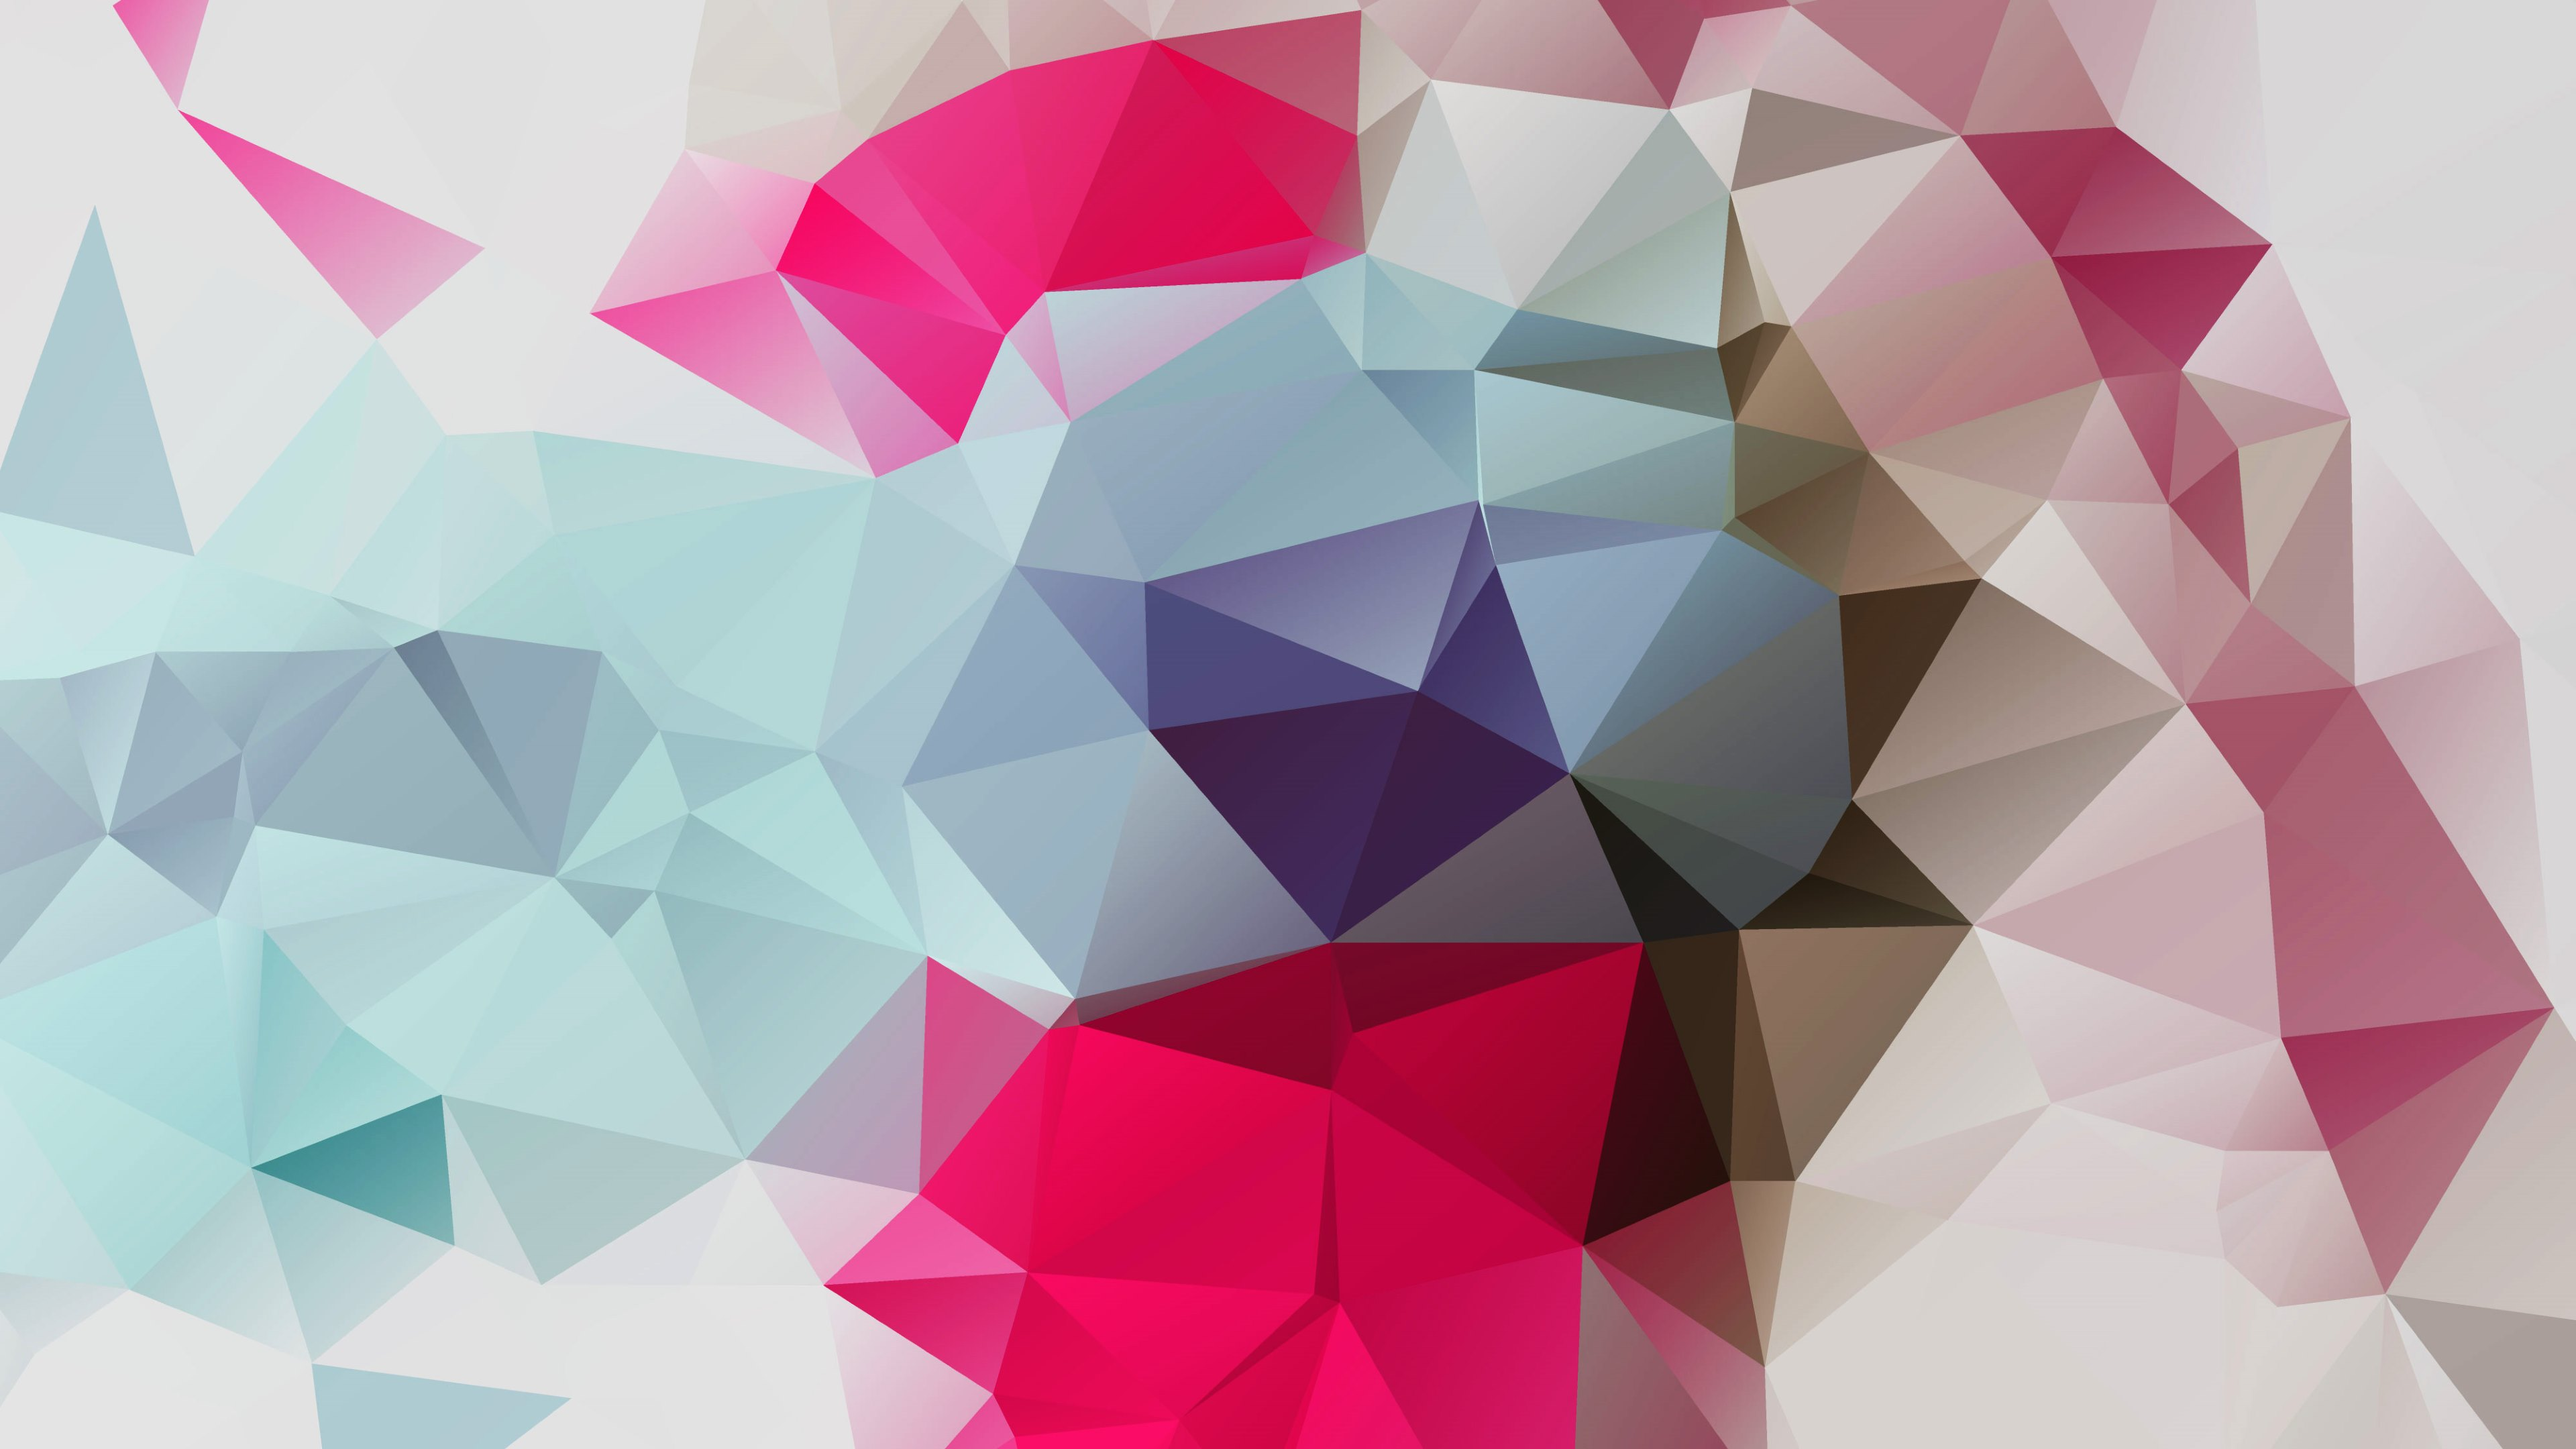 polygon backgrounds wallpaper hd wallpapers